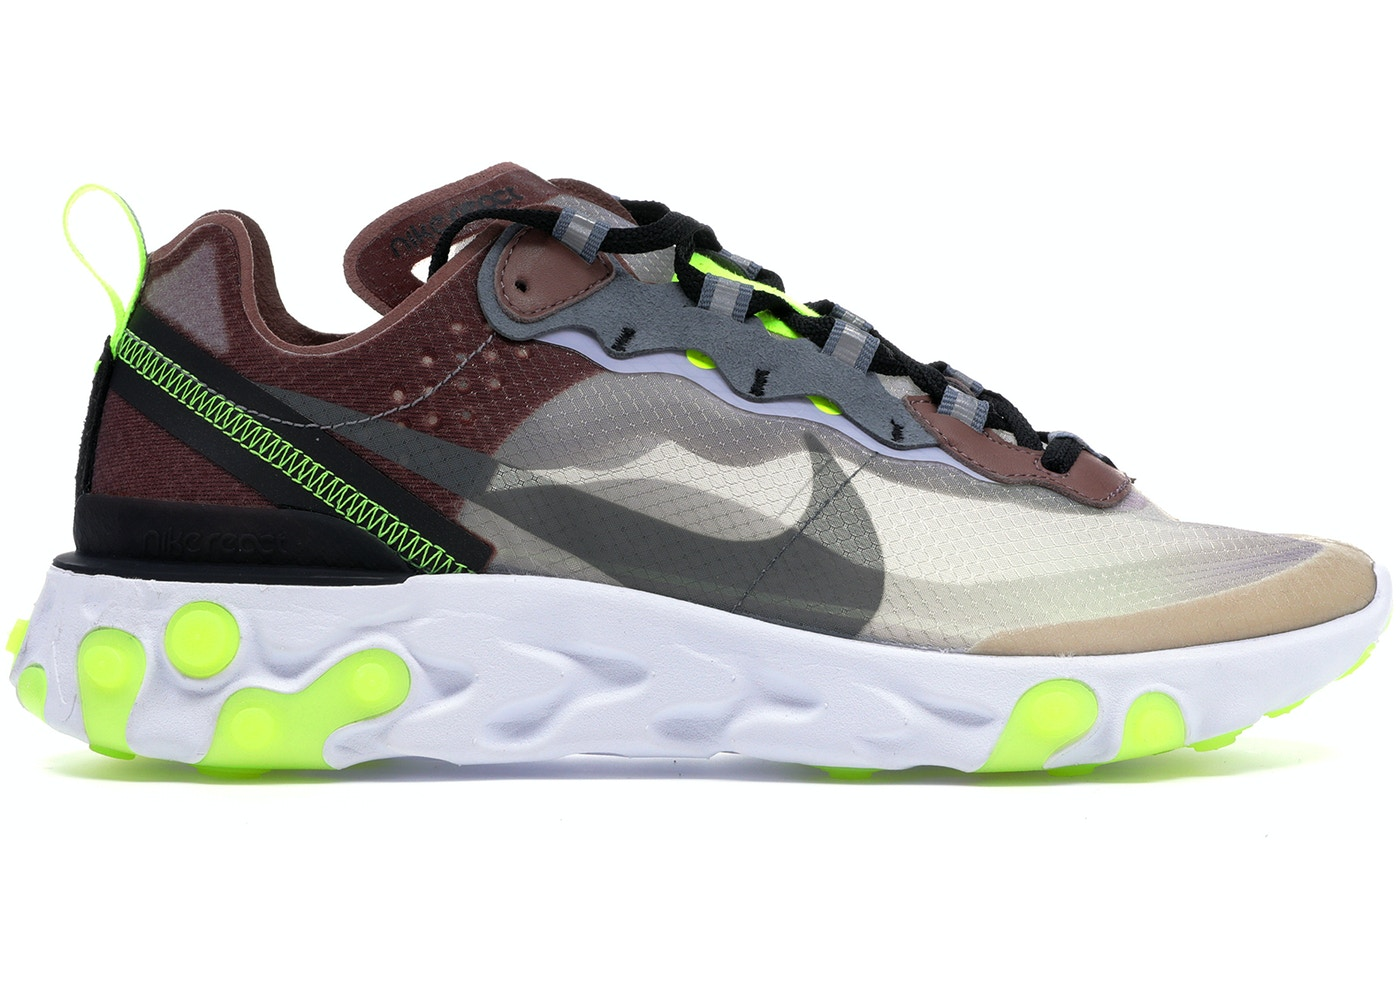 075754e84080 Nike React Element 87 Desert Sand - AQ1090-002